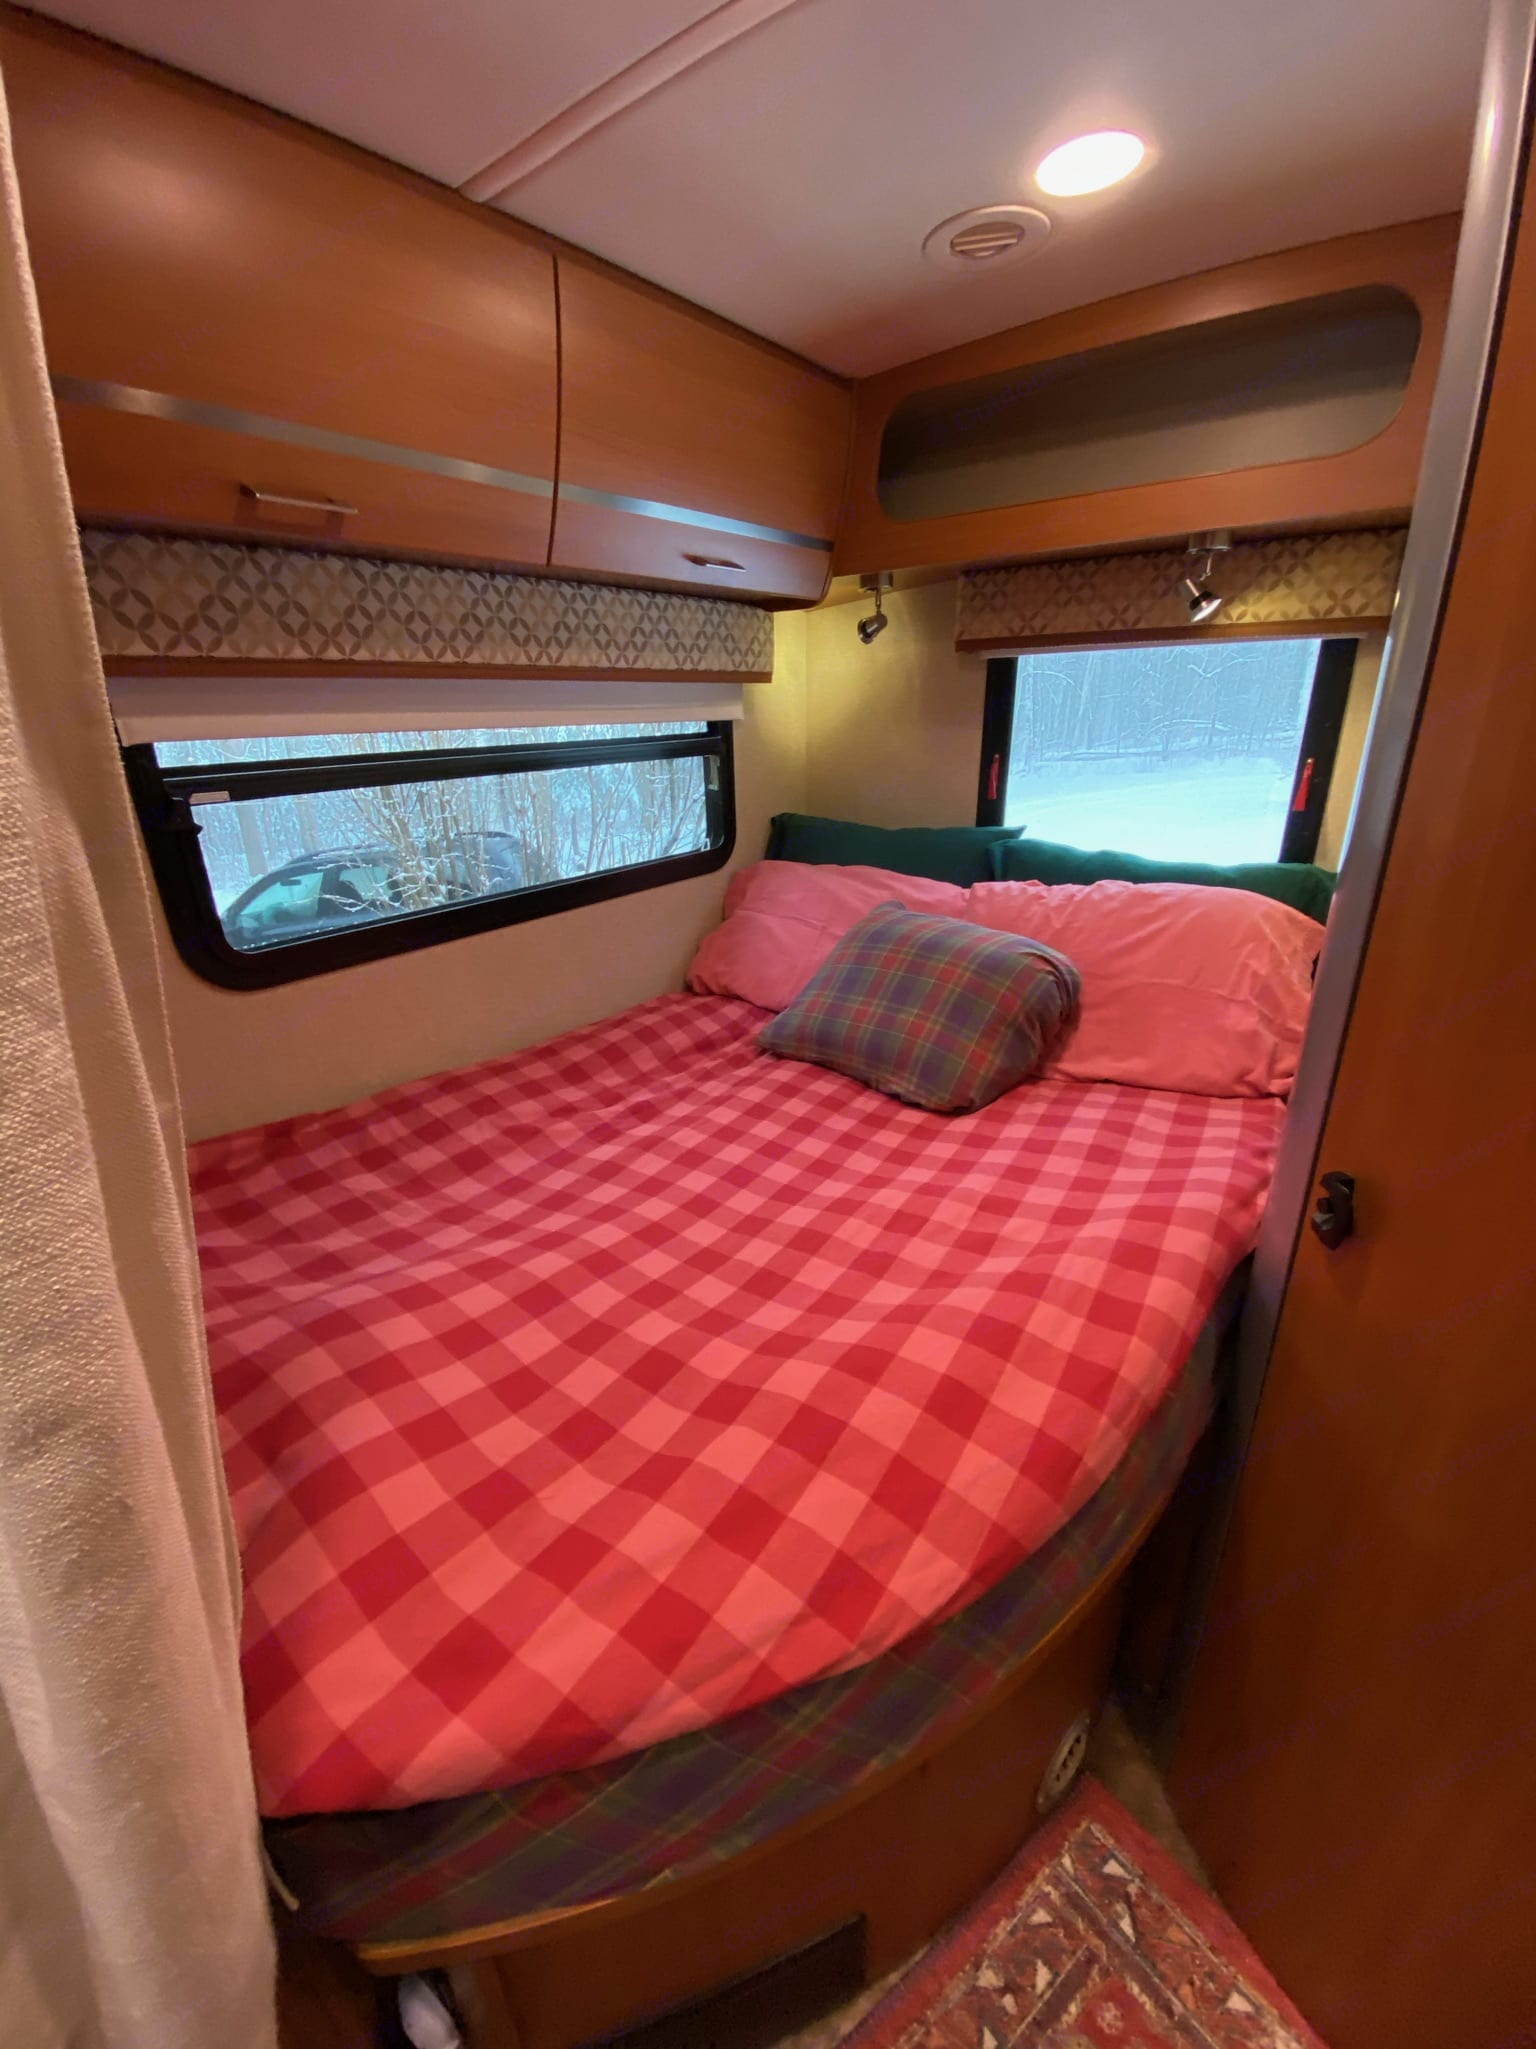 All ready for cozy snooze! Also has privacy curtain that can be used to create sanctuary.. Winnebago View 2014